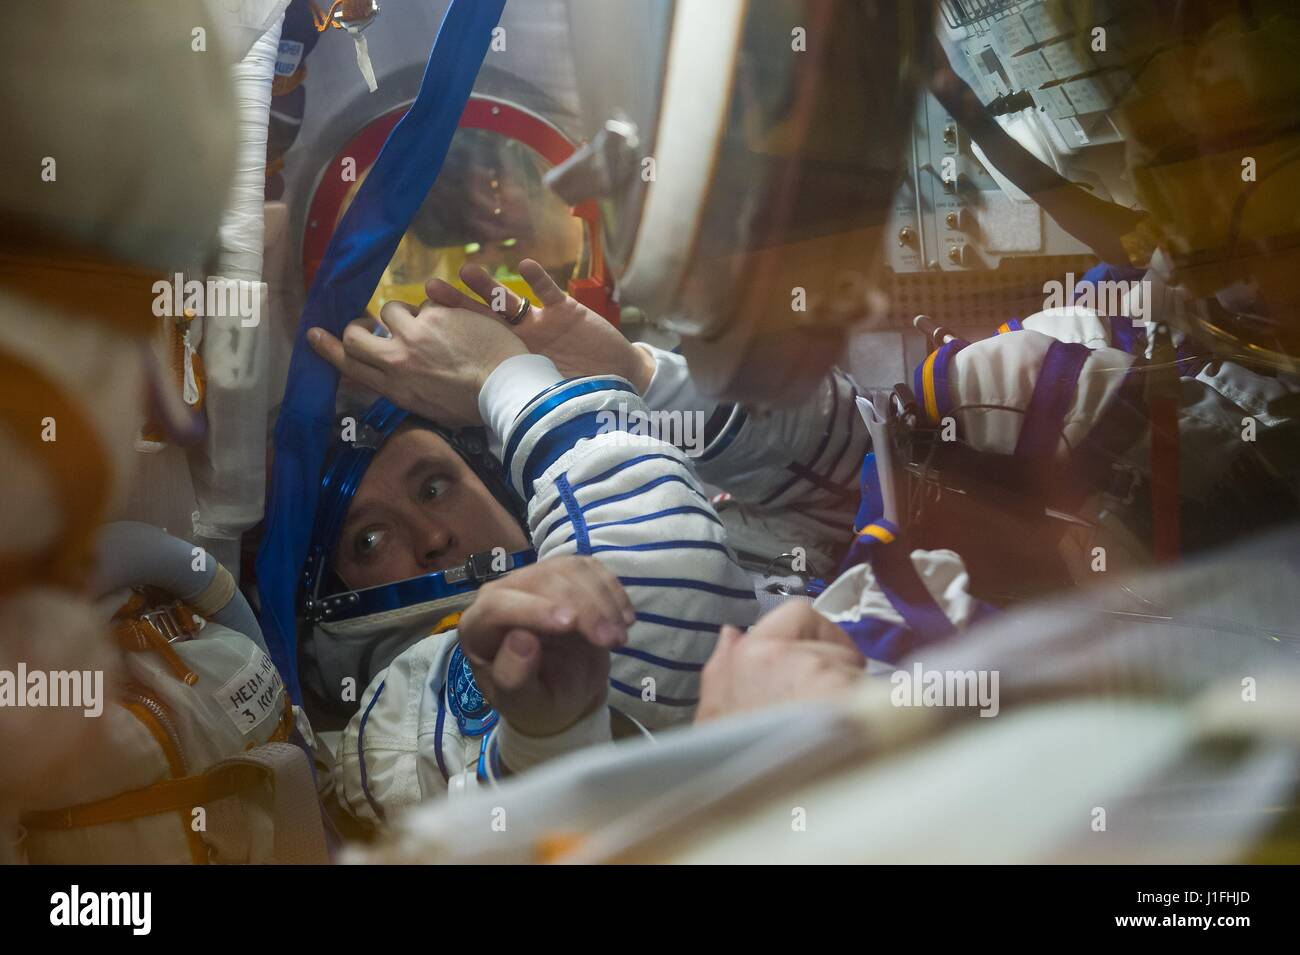 NASA International Space Station Expedition 51 prime crew member American astronaut Jack Fischer tests the Soyuz - Stock Image